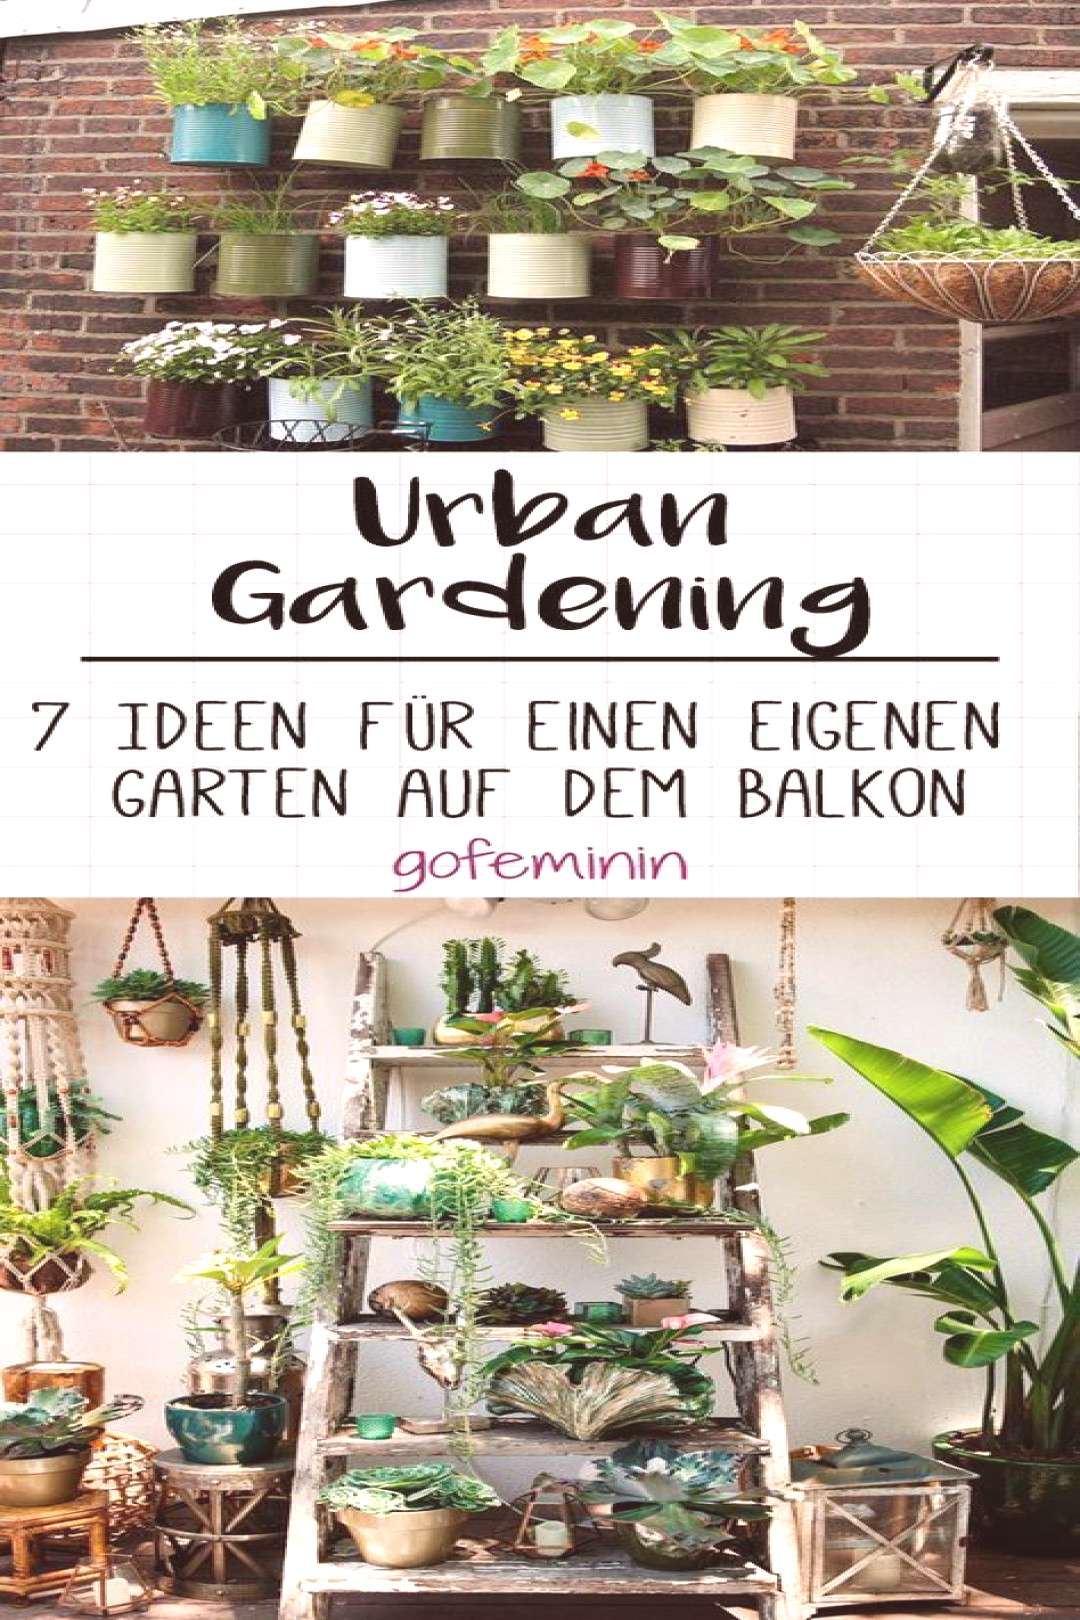 Urban gardening 7 ideas for your own vegetable garden on the balcony - Urban gardening 7 ideas f